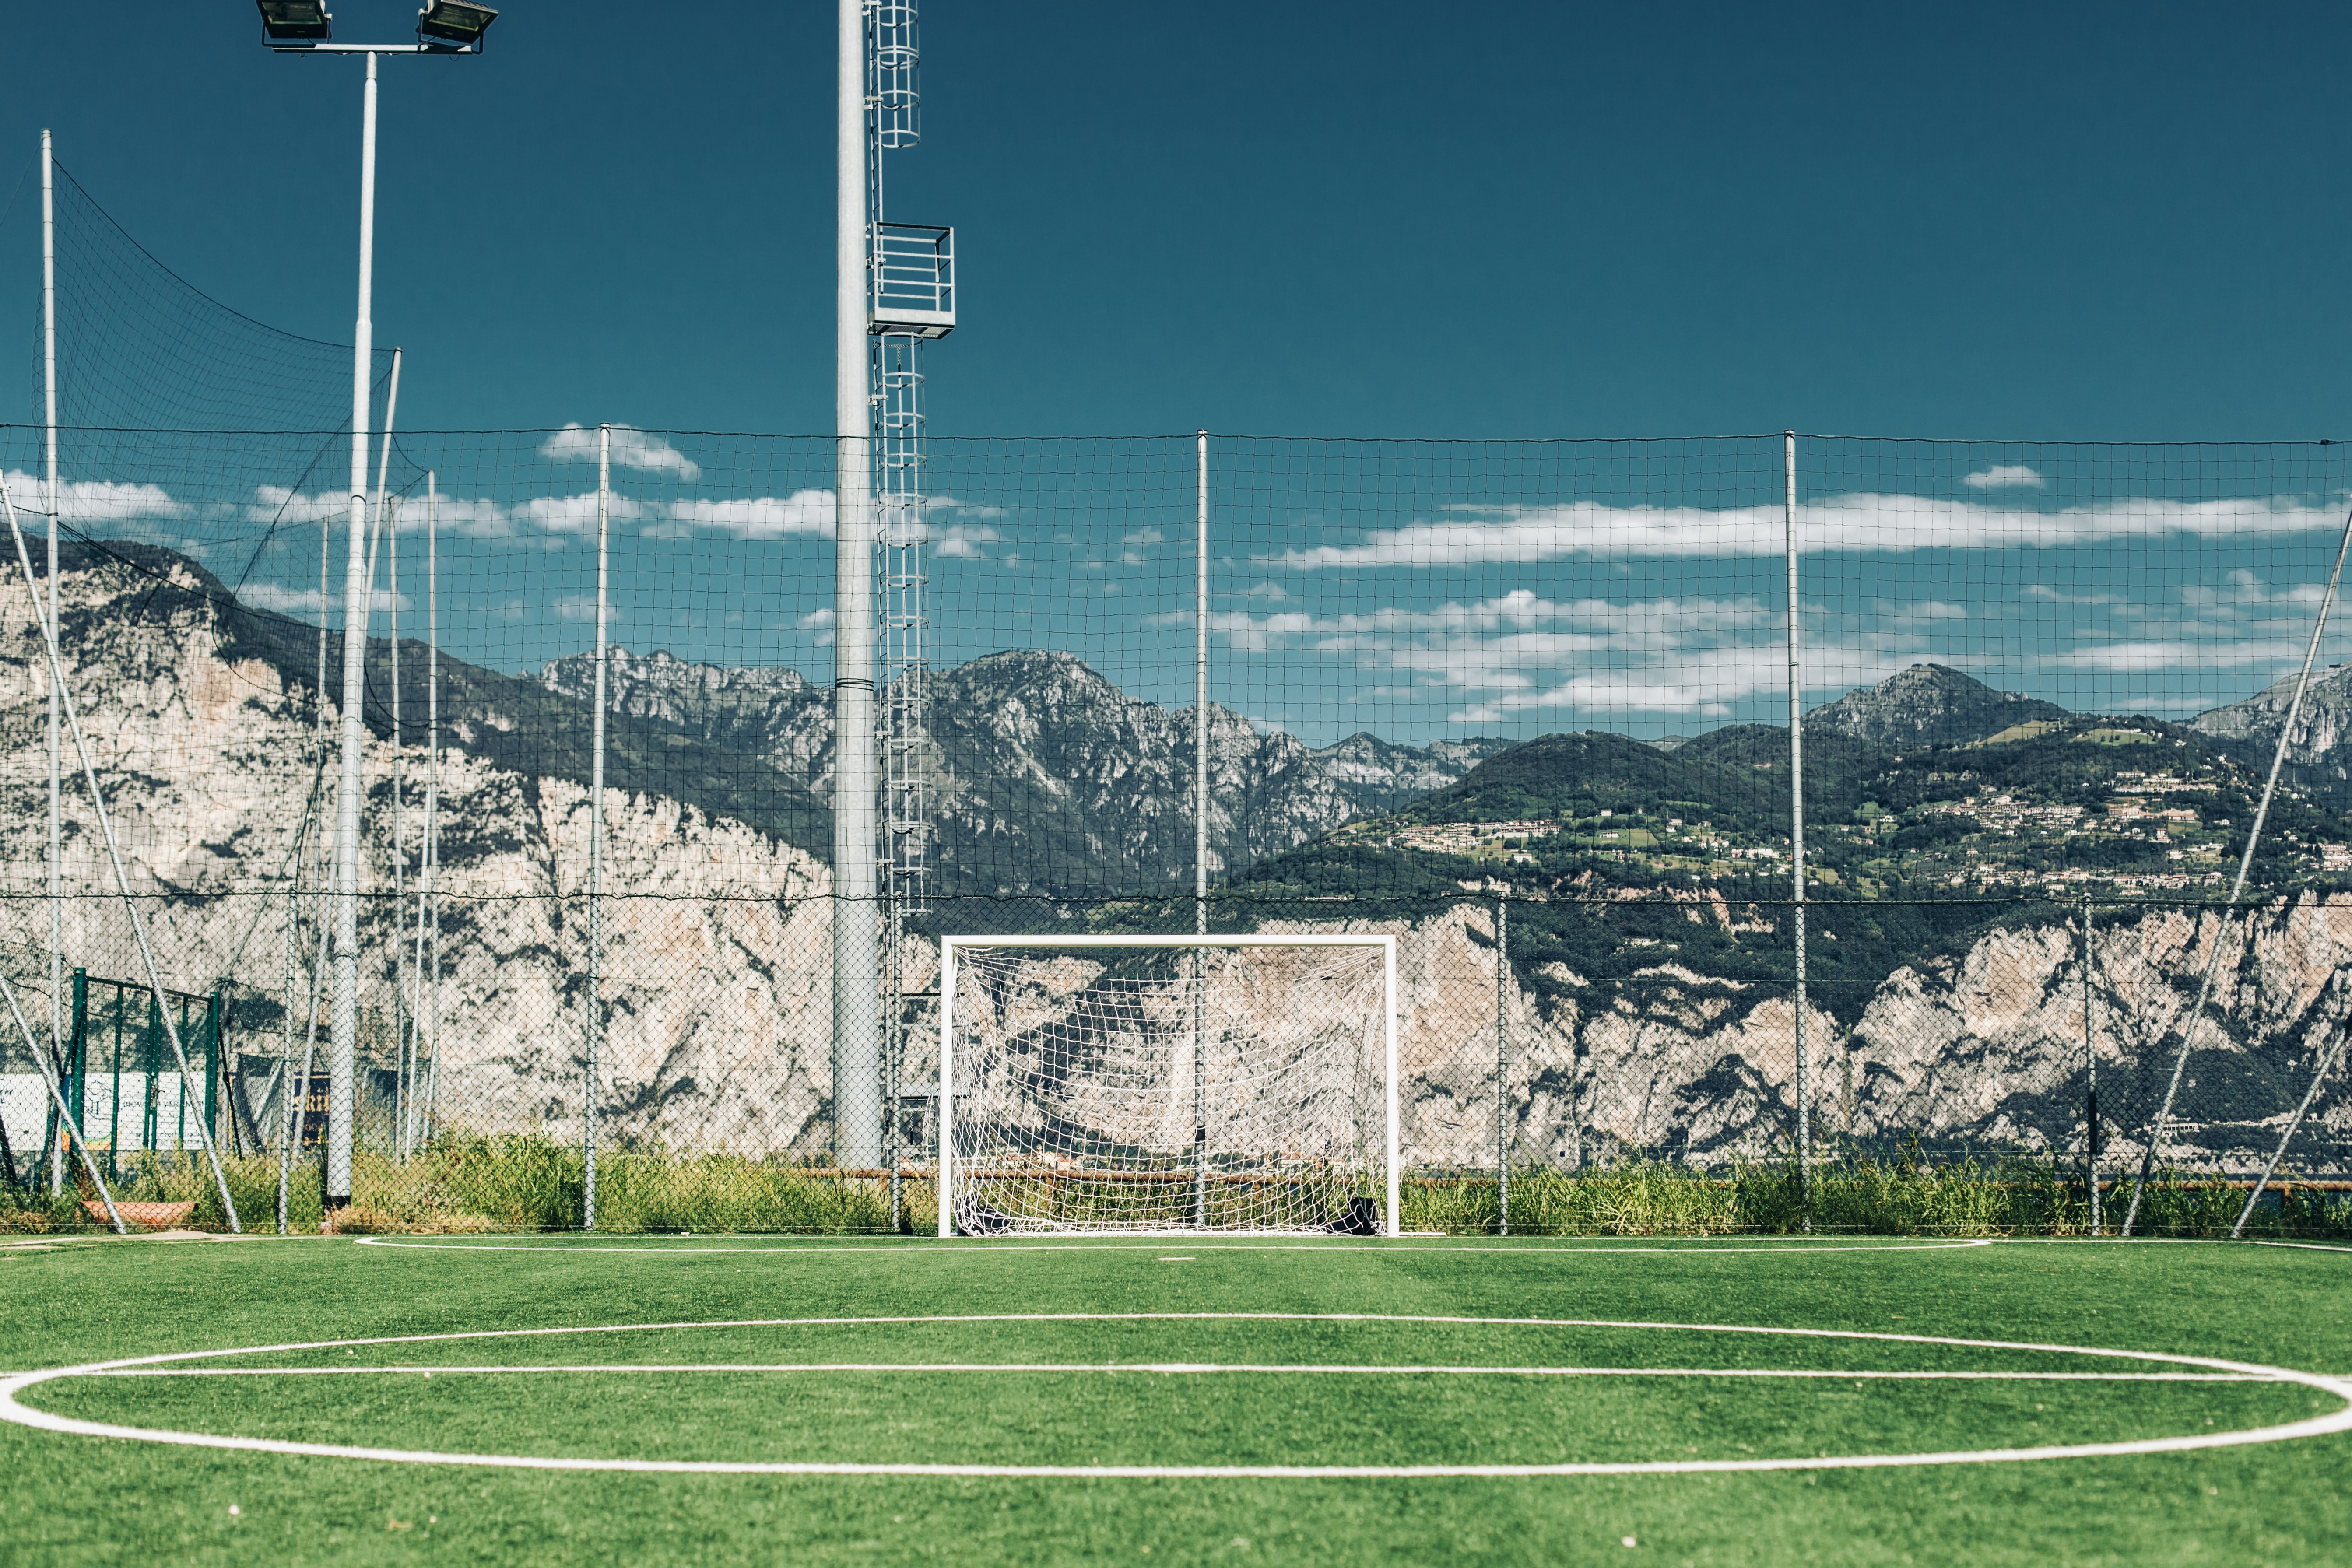 soccer field in distant of mountain